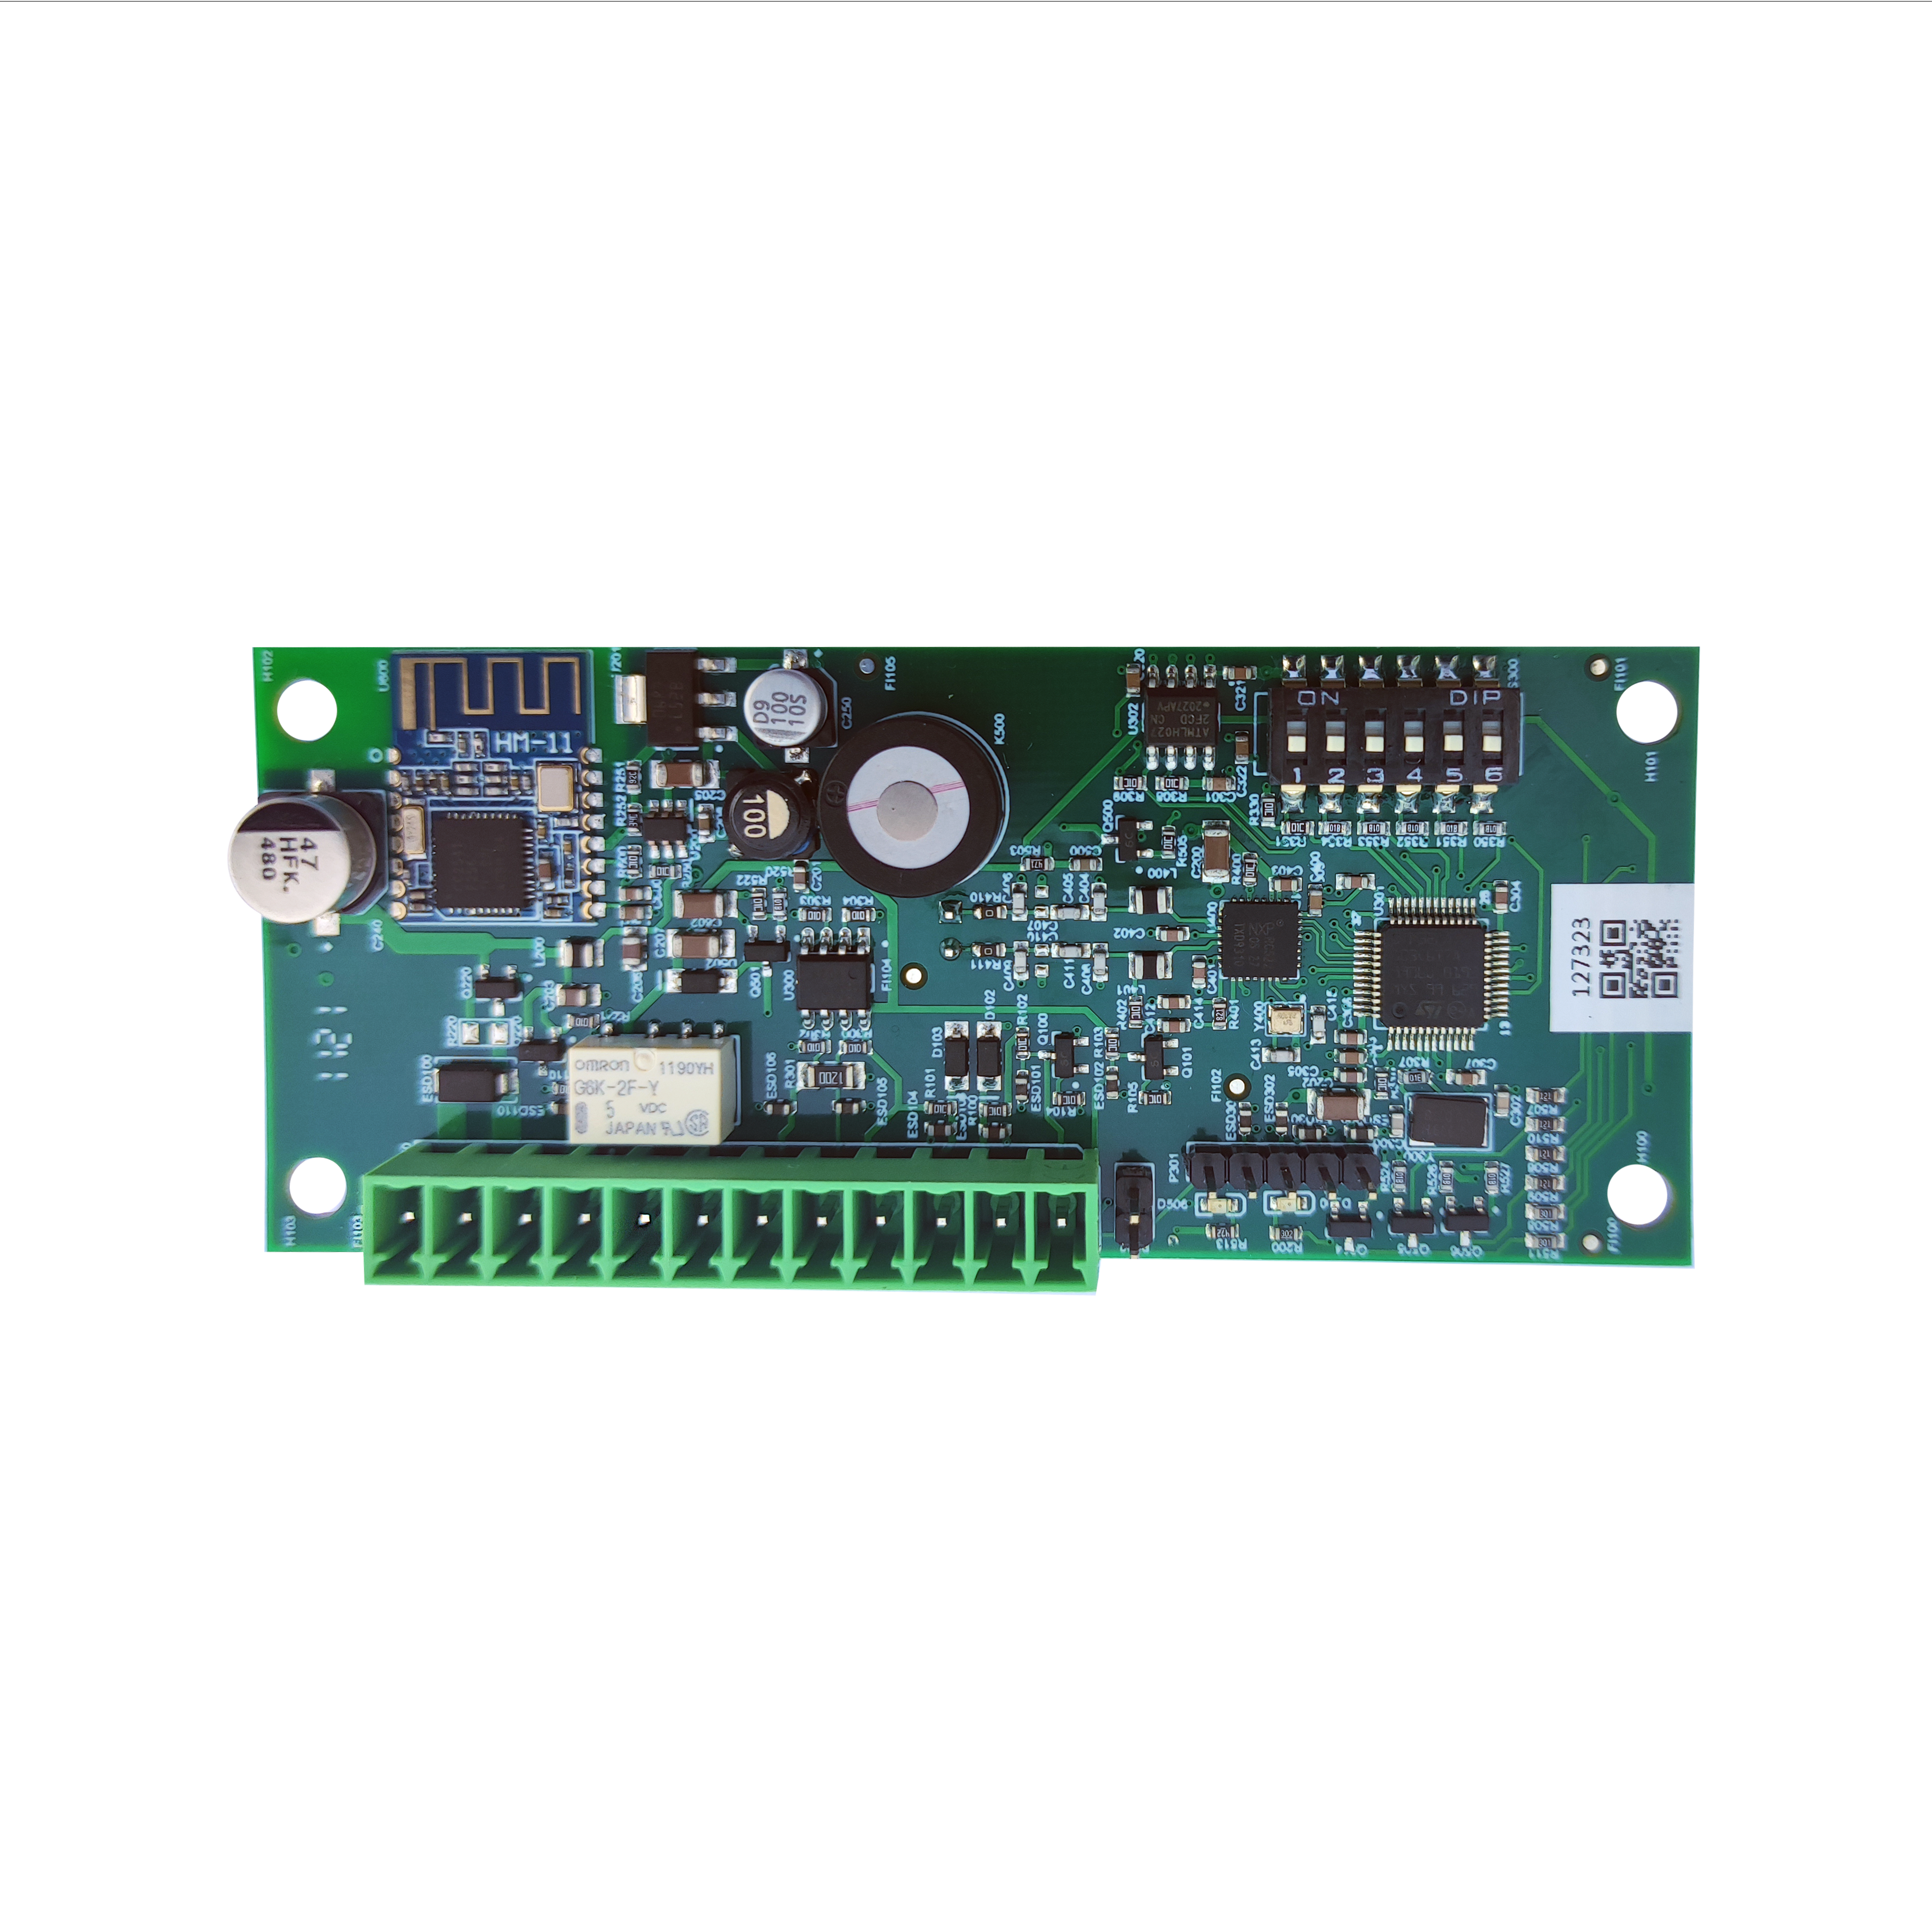 PCB-front-max-res